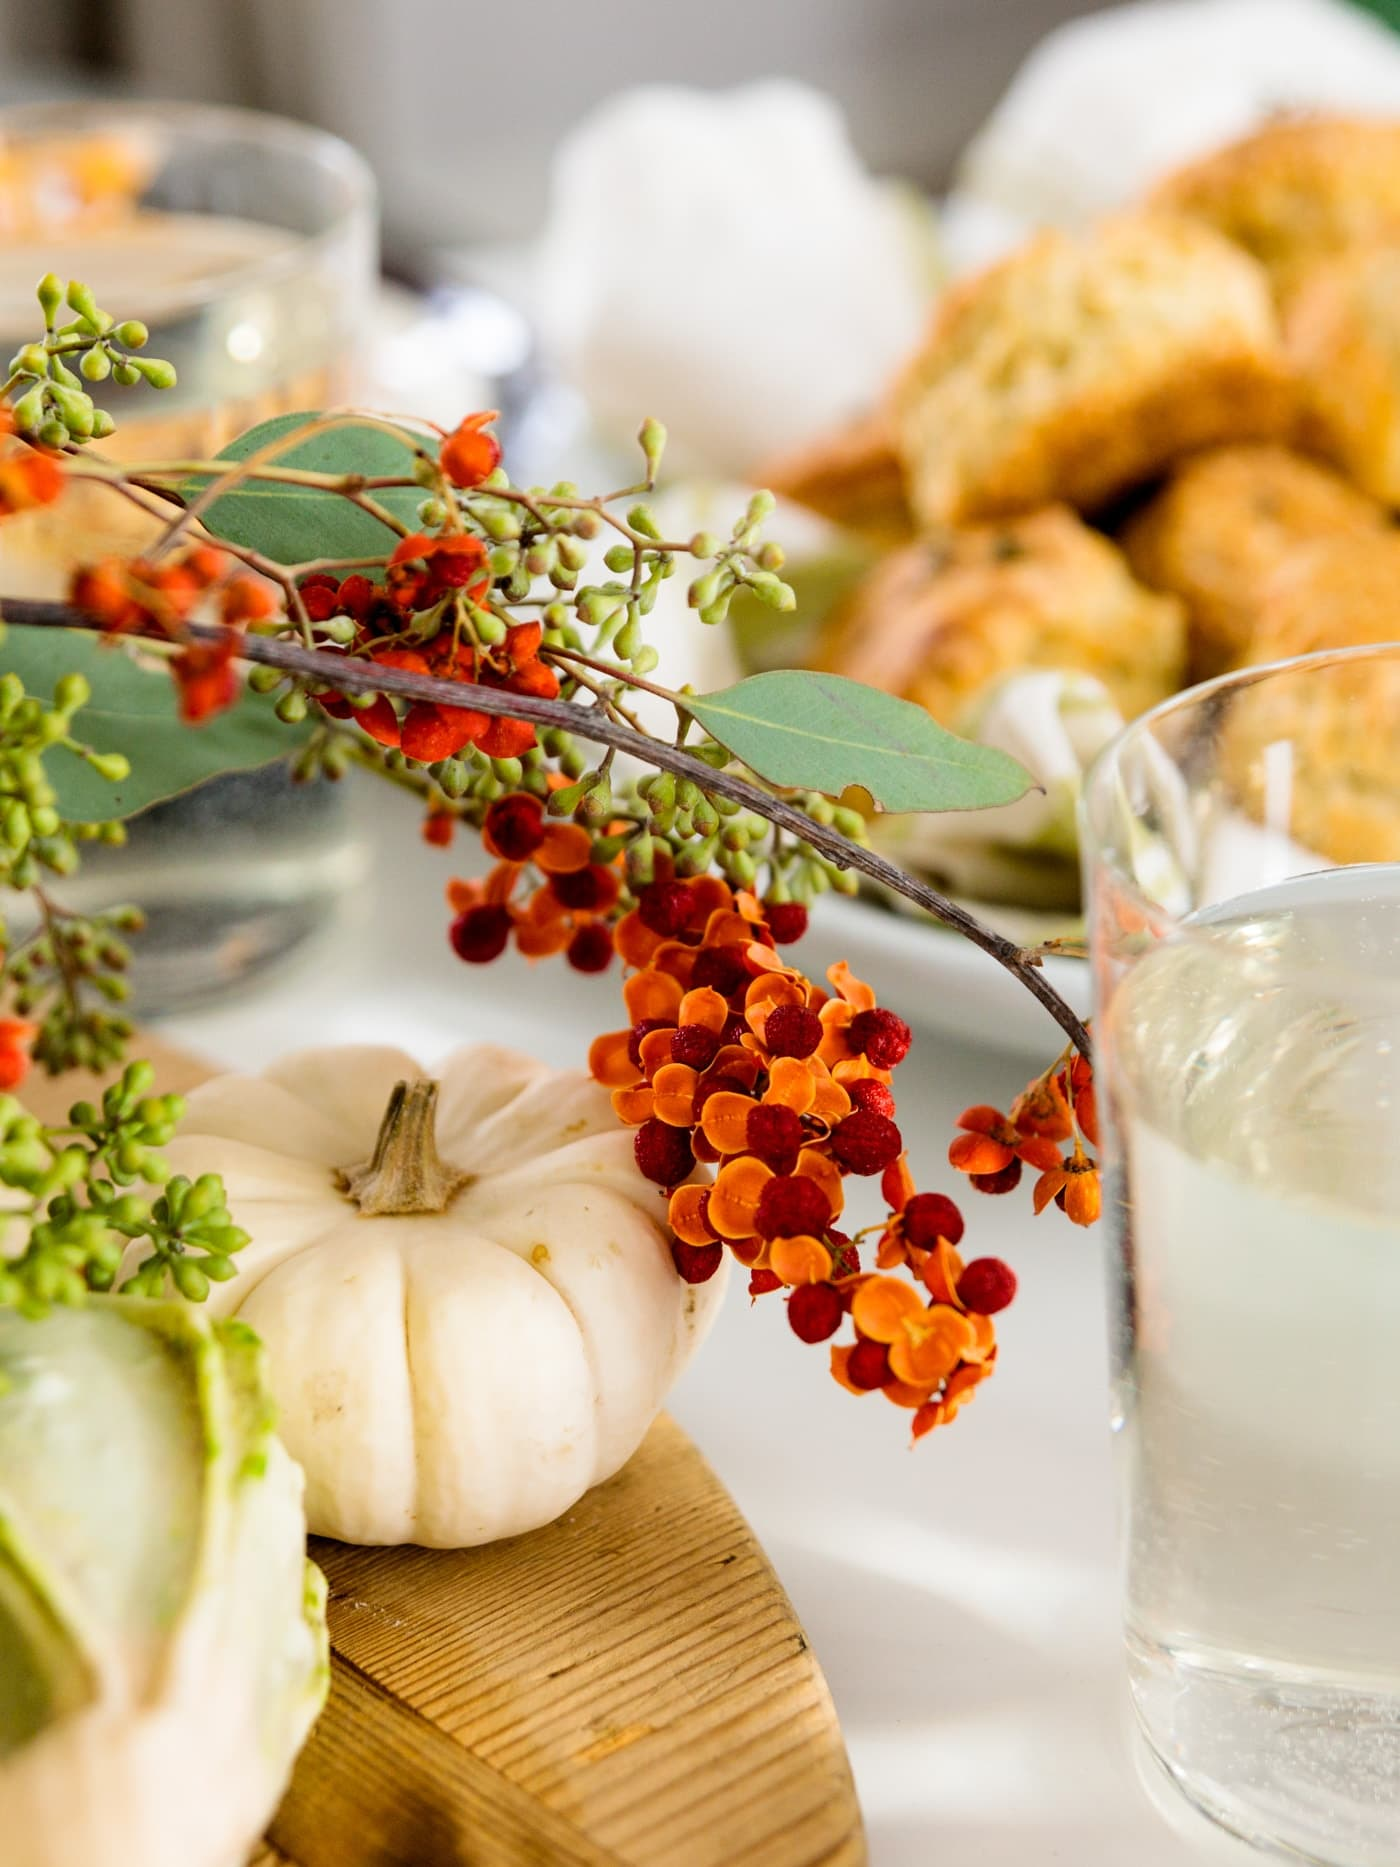 Herb cheese biscuits in background with bittersweet arrangement and white pumpkins in foreground all on white surface